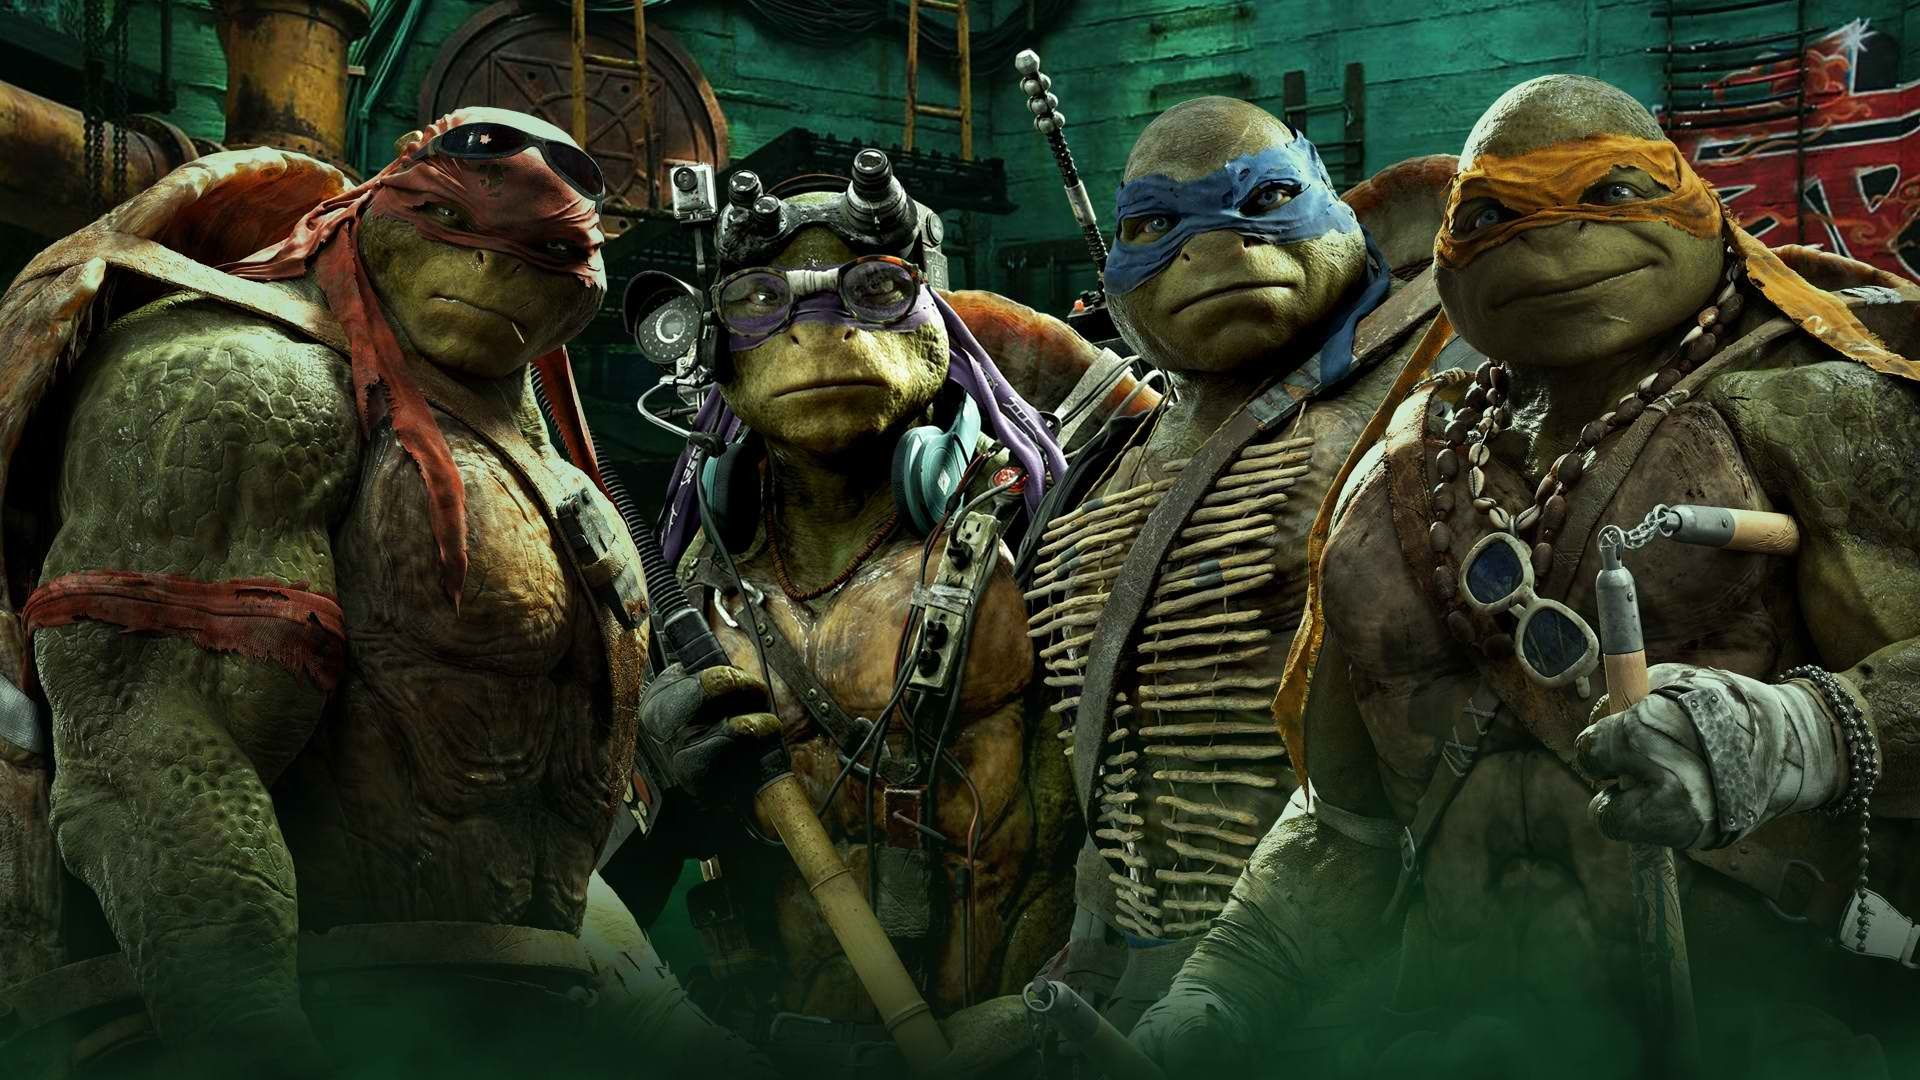 1920x1080 Teenage Mutant Ninja Turtles Wallpapers Wallpaper